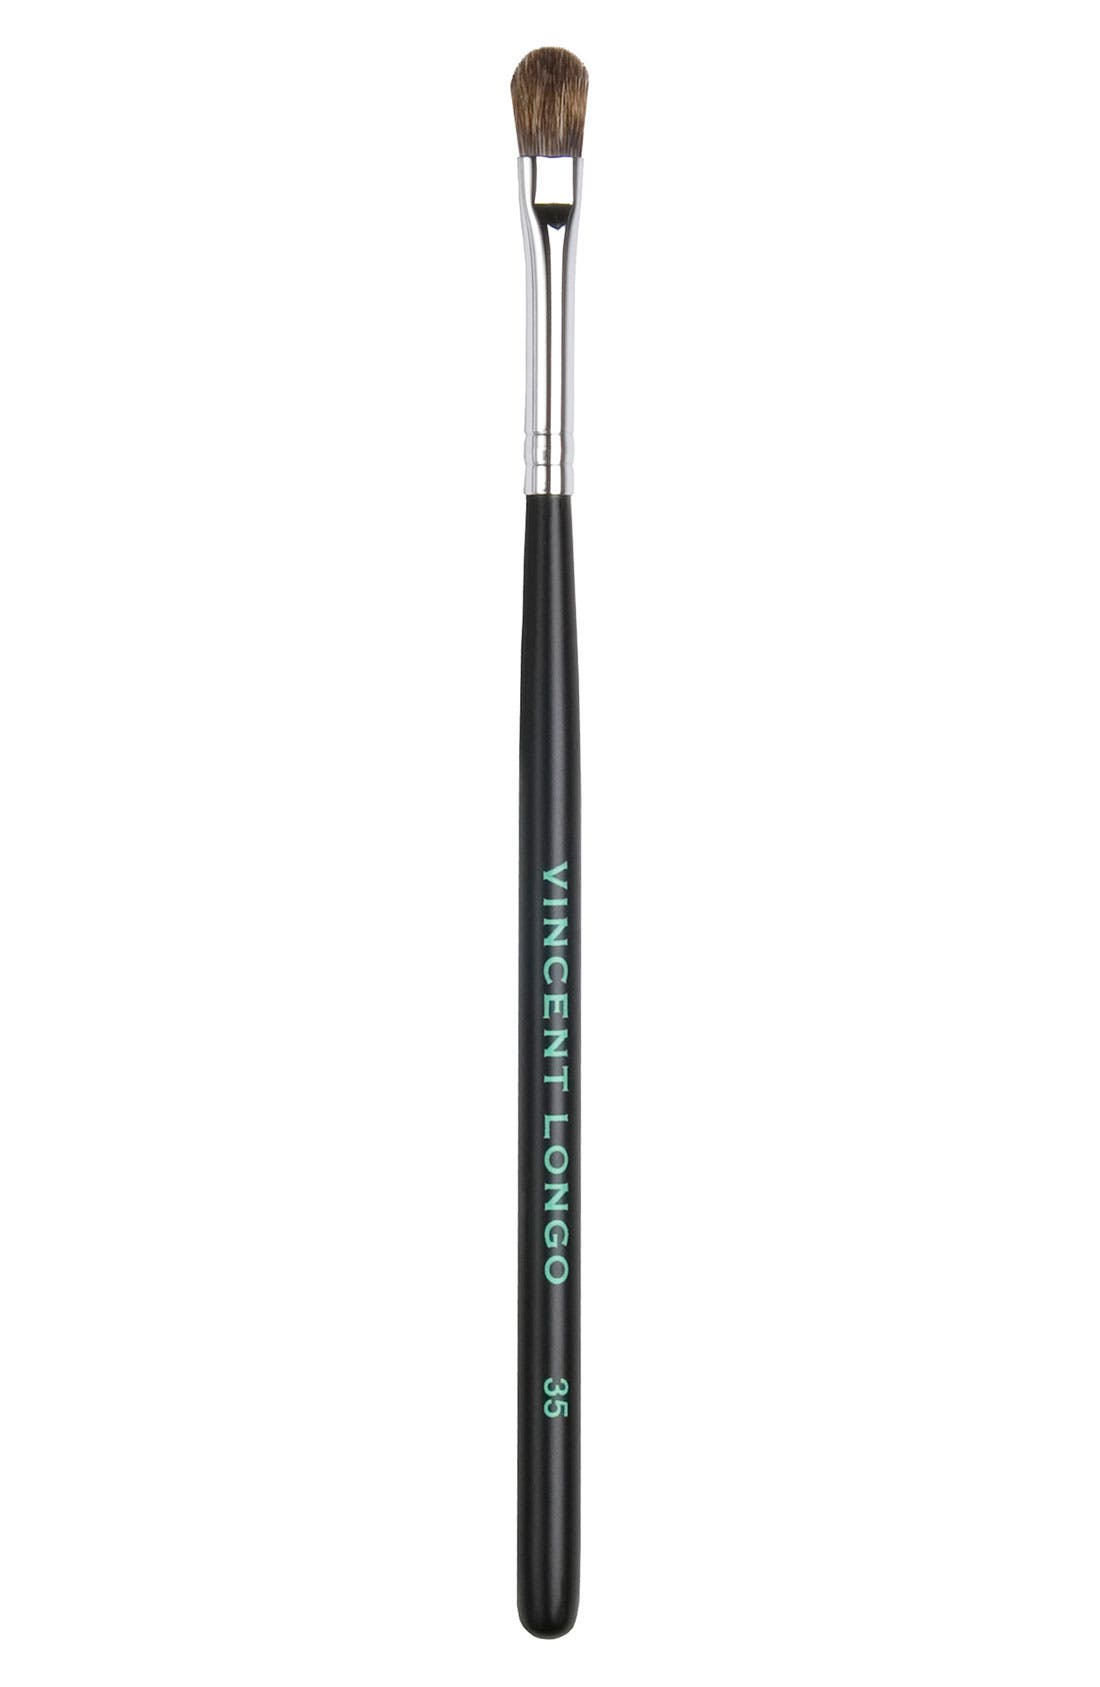 Vincent Longo 'Deluxe' Lip Brush #35